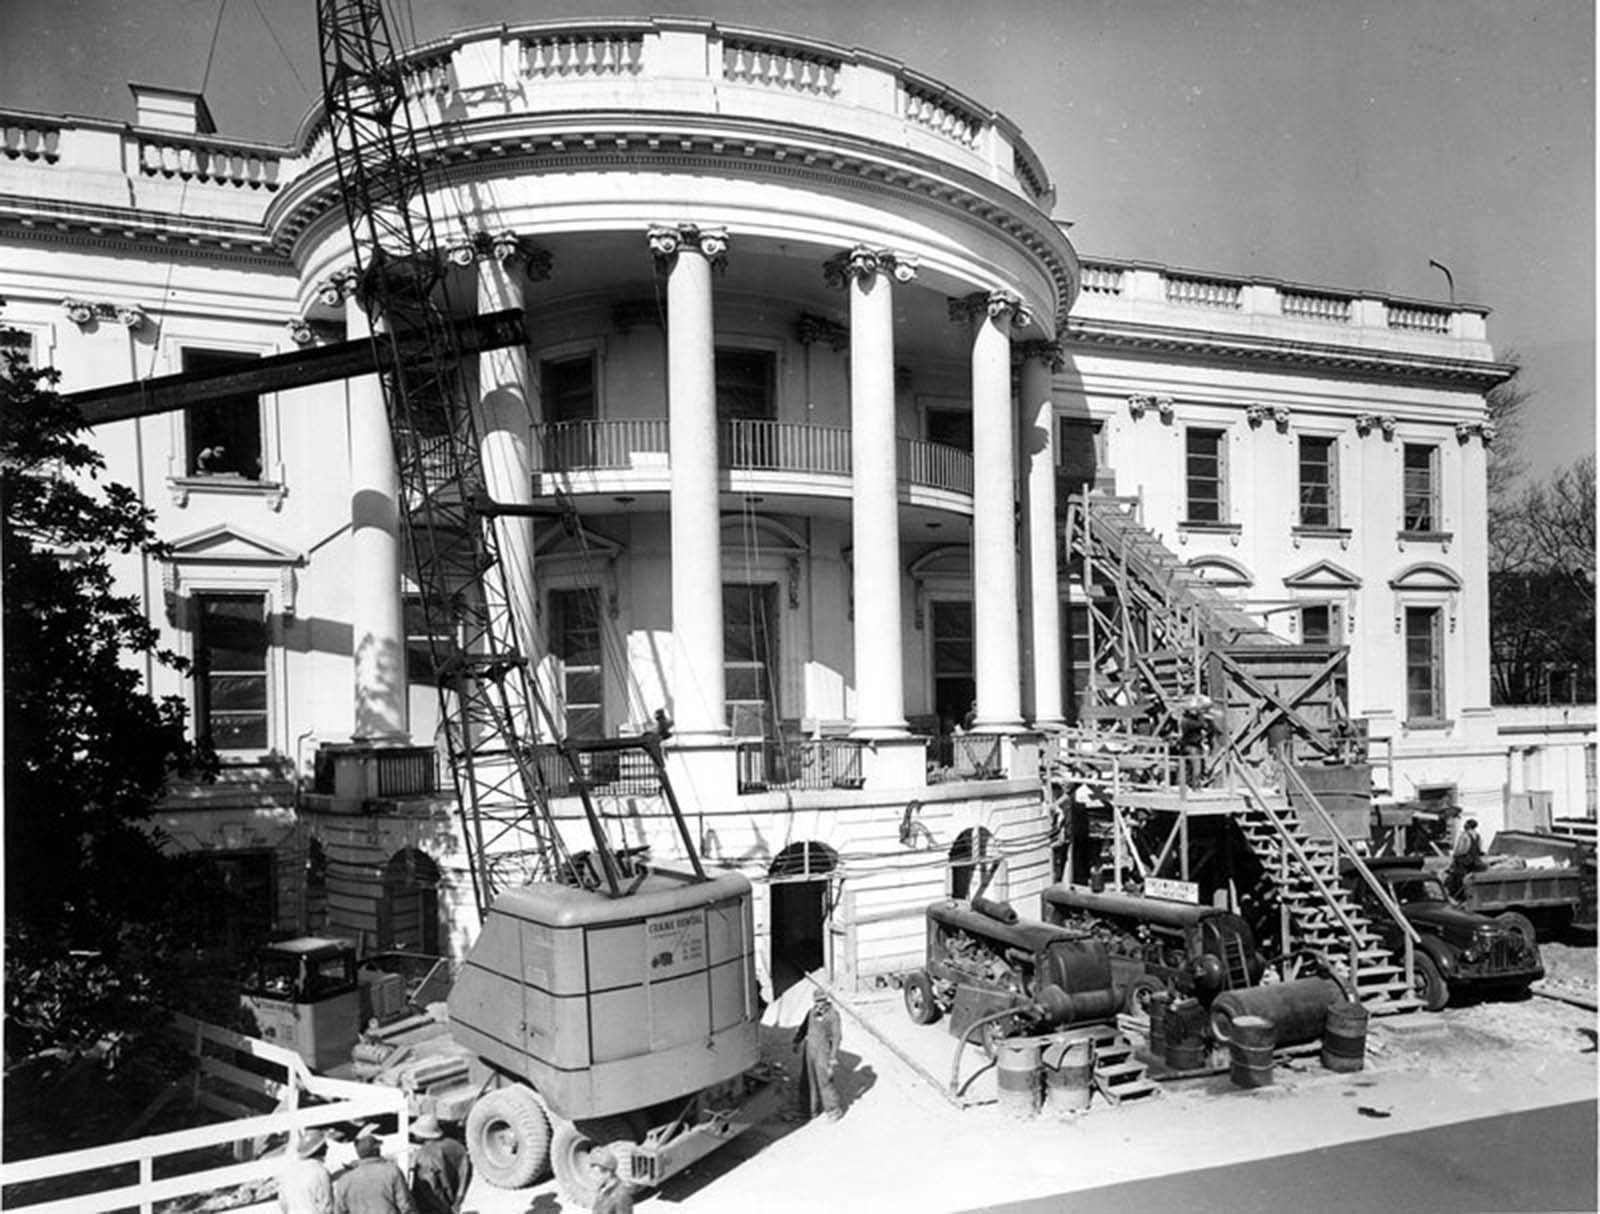 Removing debris from the White House. 1950.